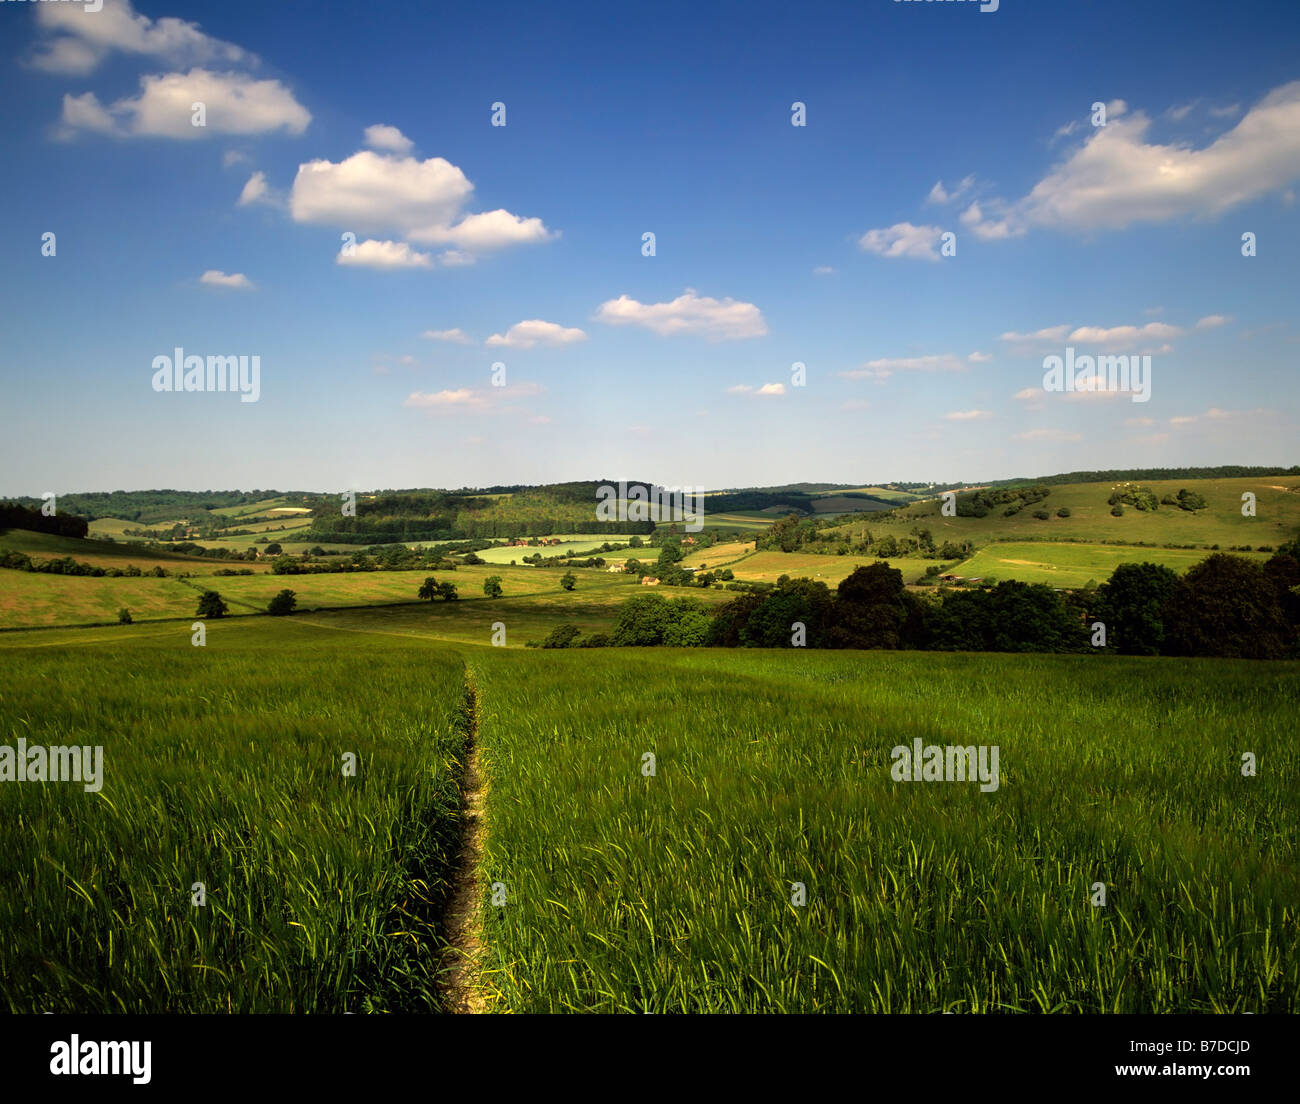 england home counties the chilterns buckinghamshire views from the ridgeway long distance footpath pitstone hill - Stock Image